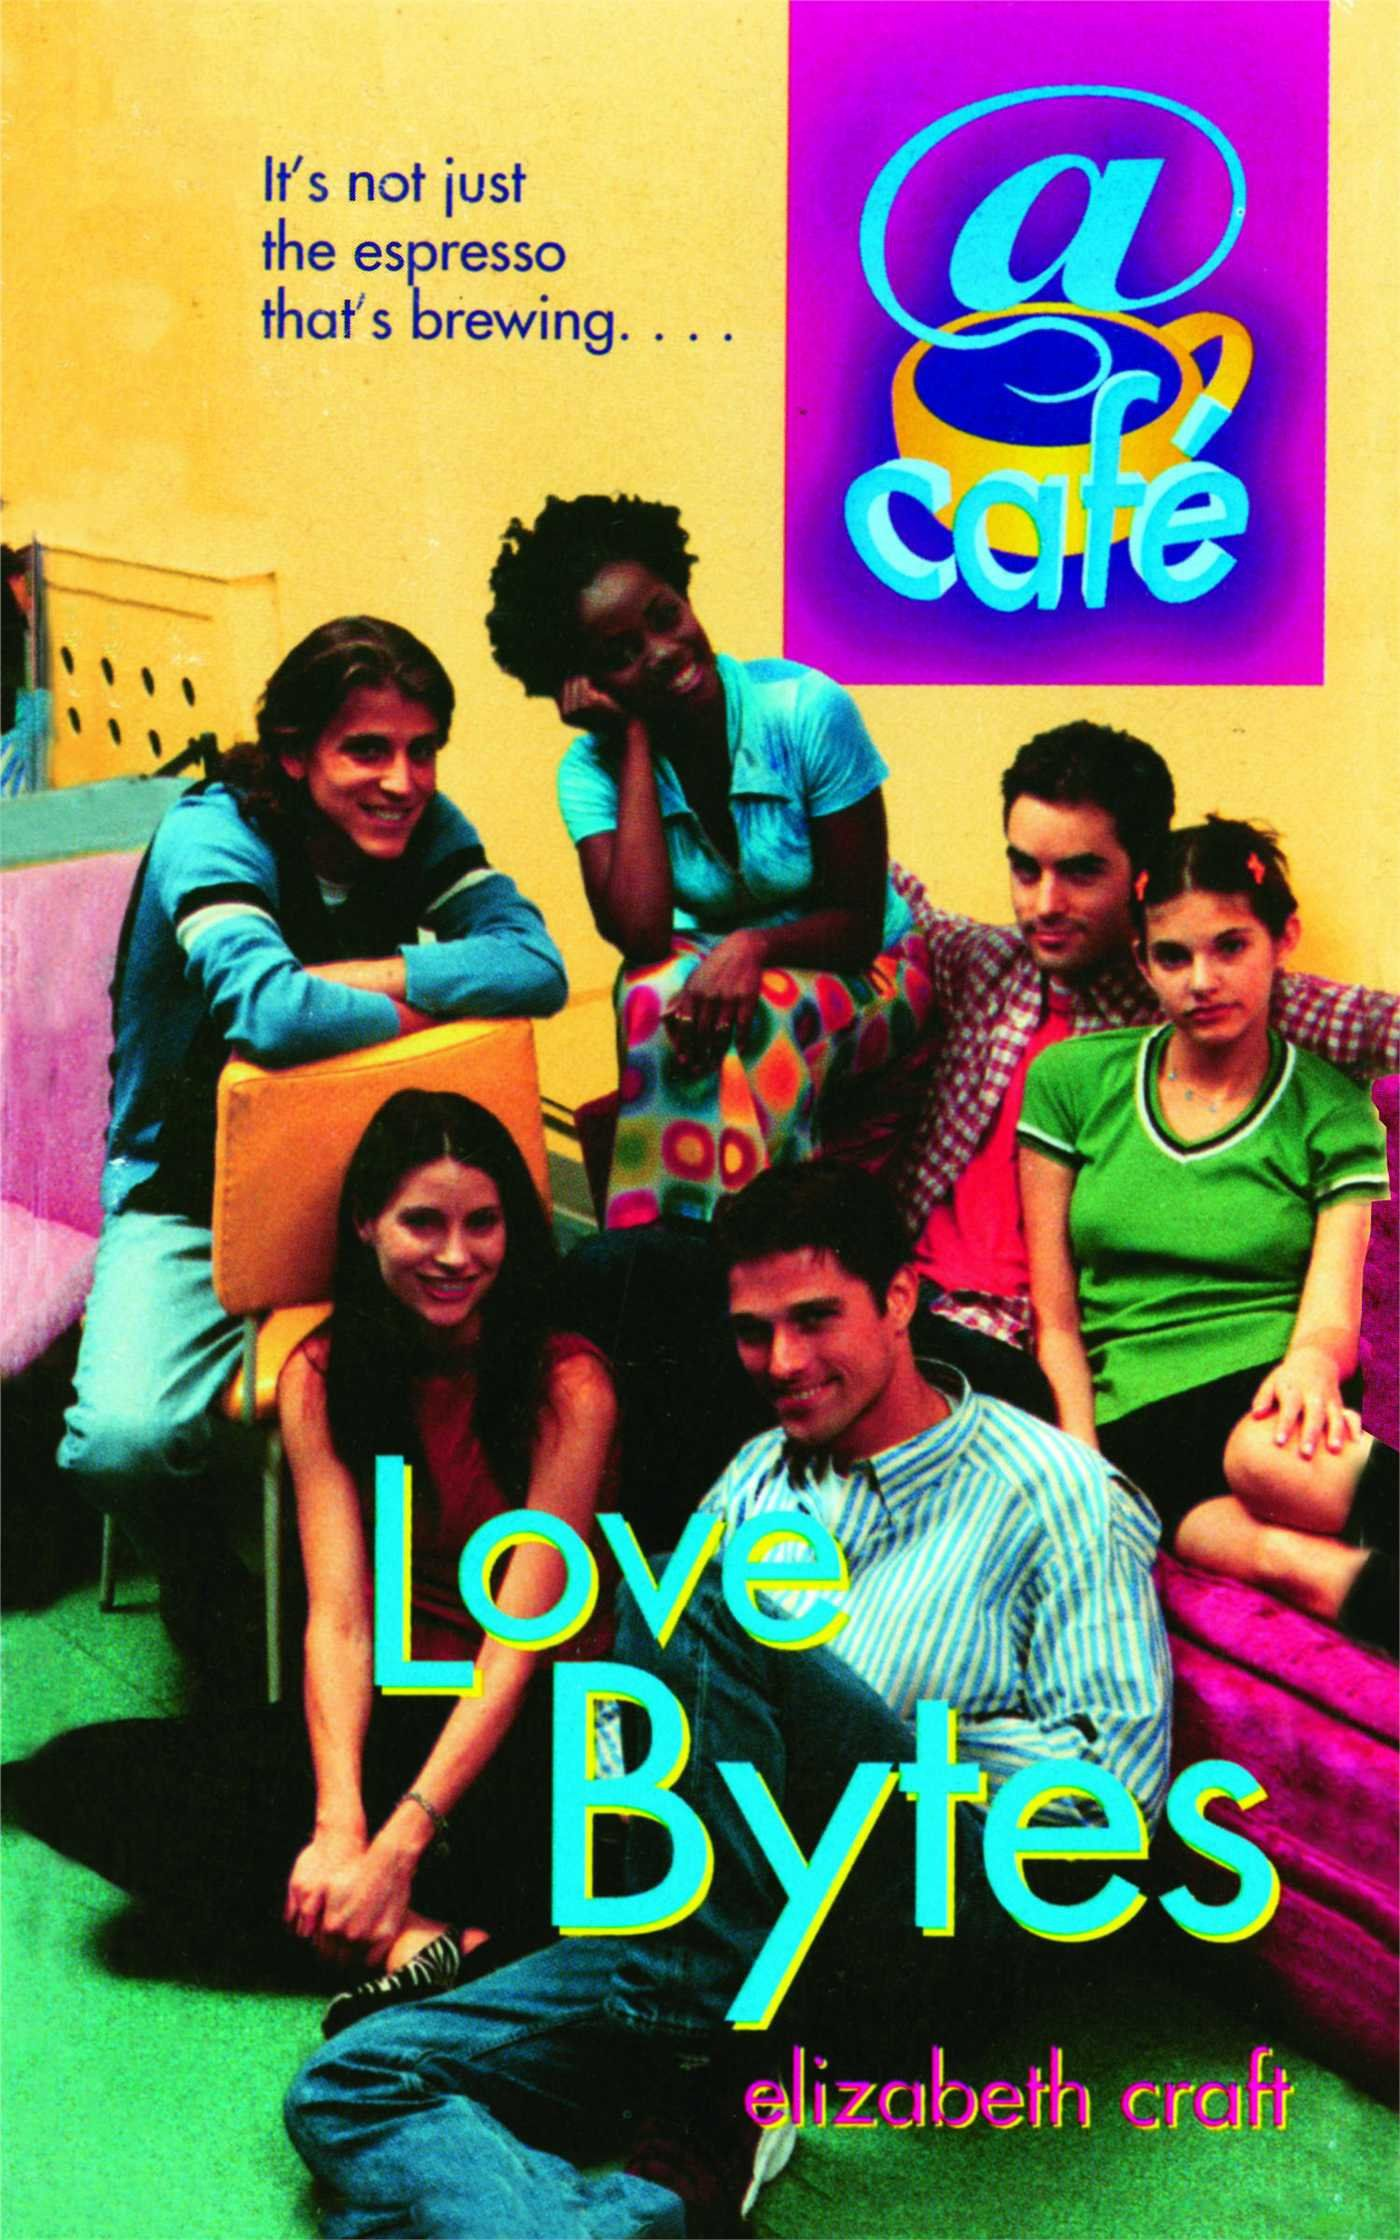 Image of the book cover for LOVE BYTES, featuring a group of teens sitting in a cafe